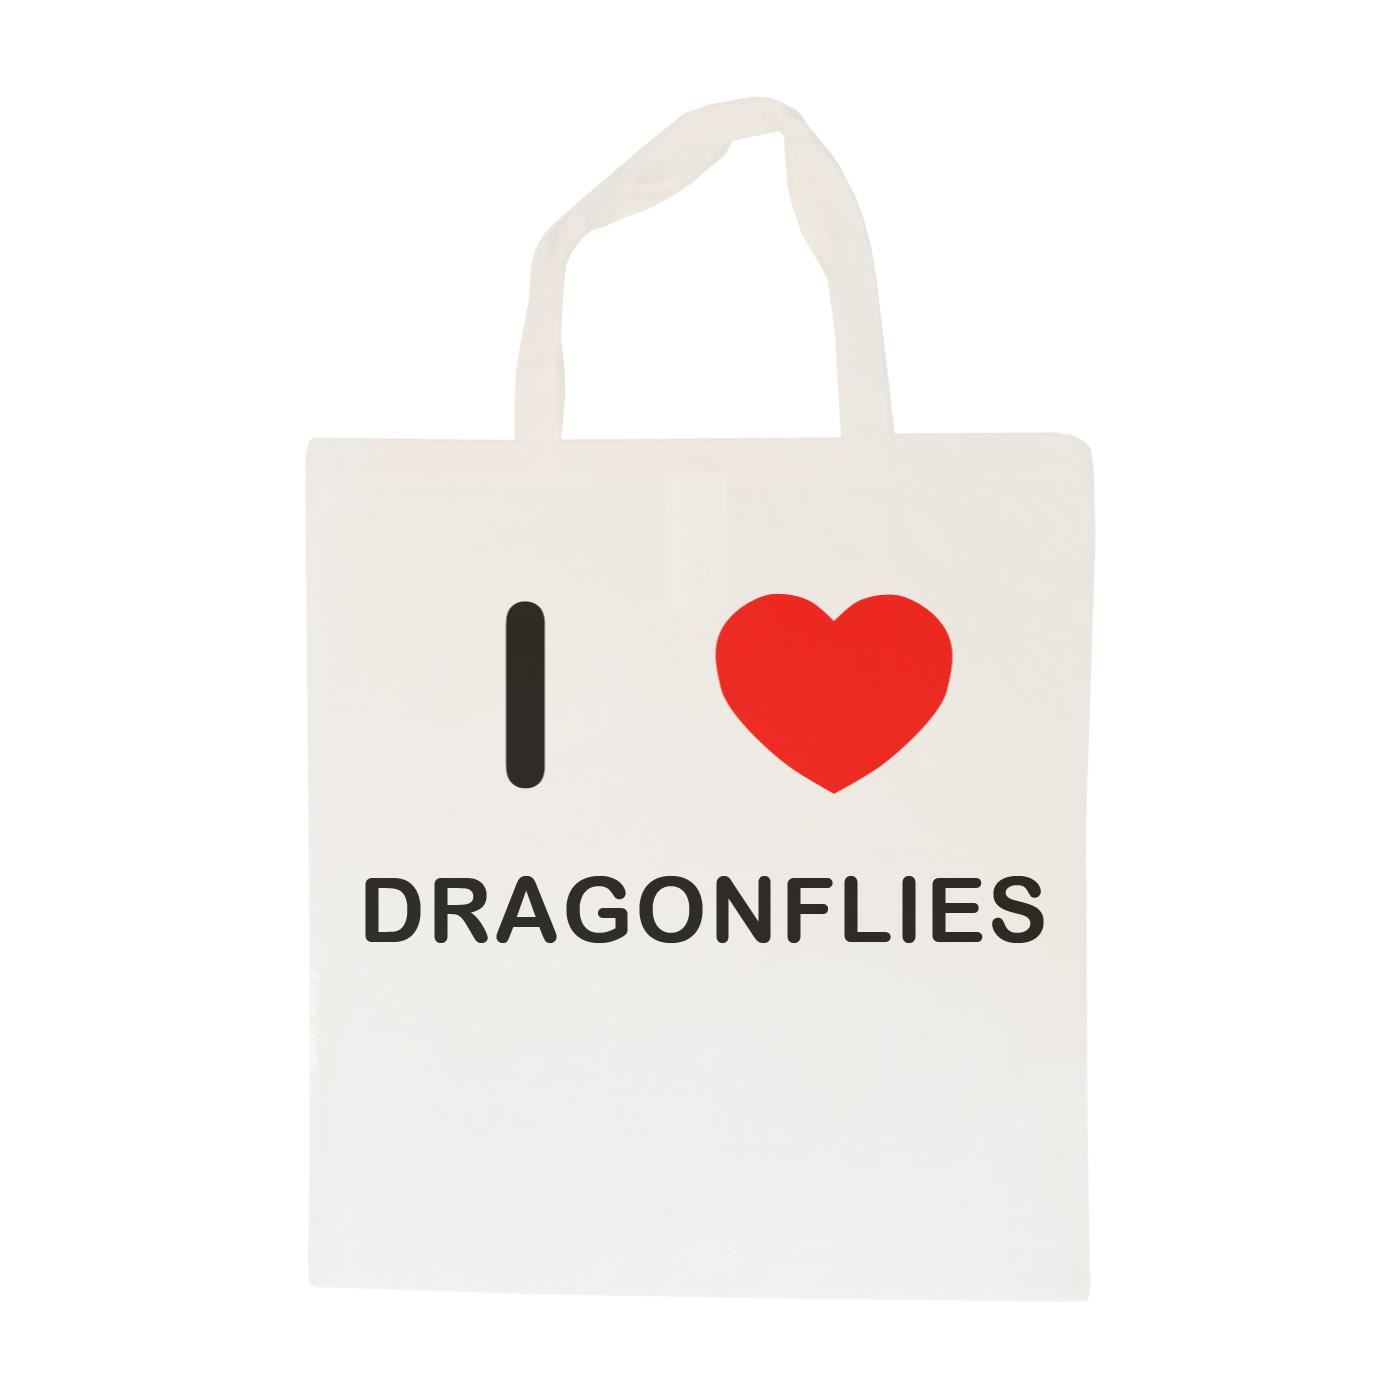 I Love Dragonflies - Cotton Bag | Size choice Tote, Shopper or Sling